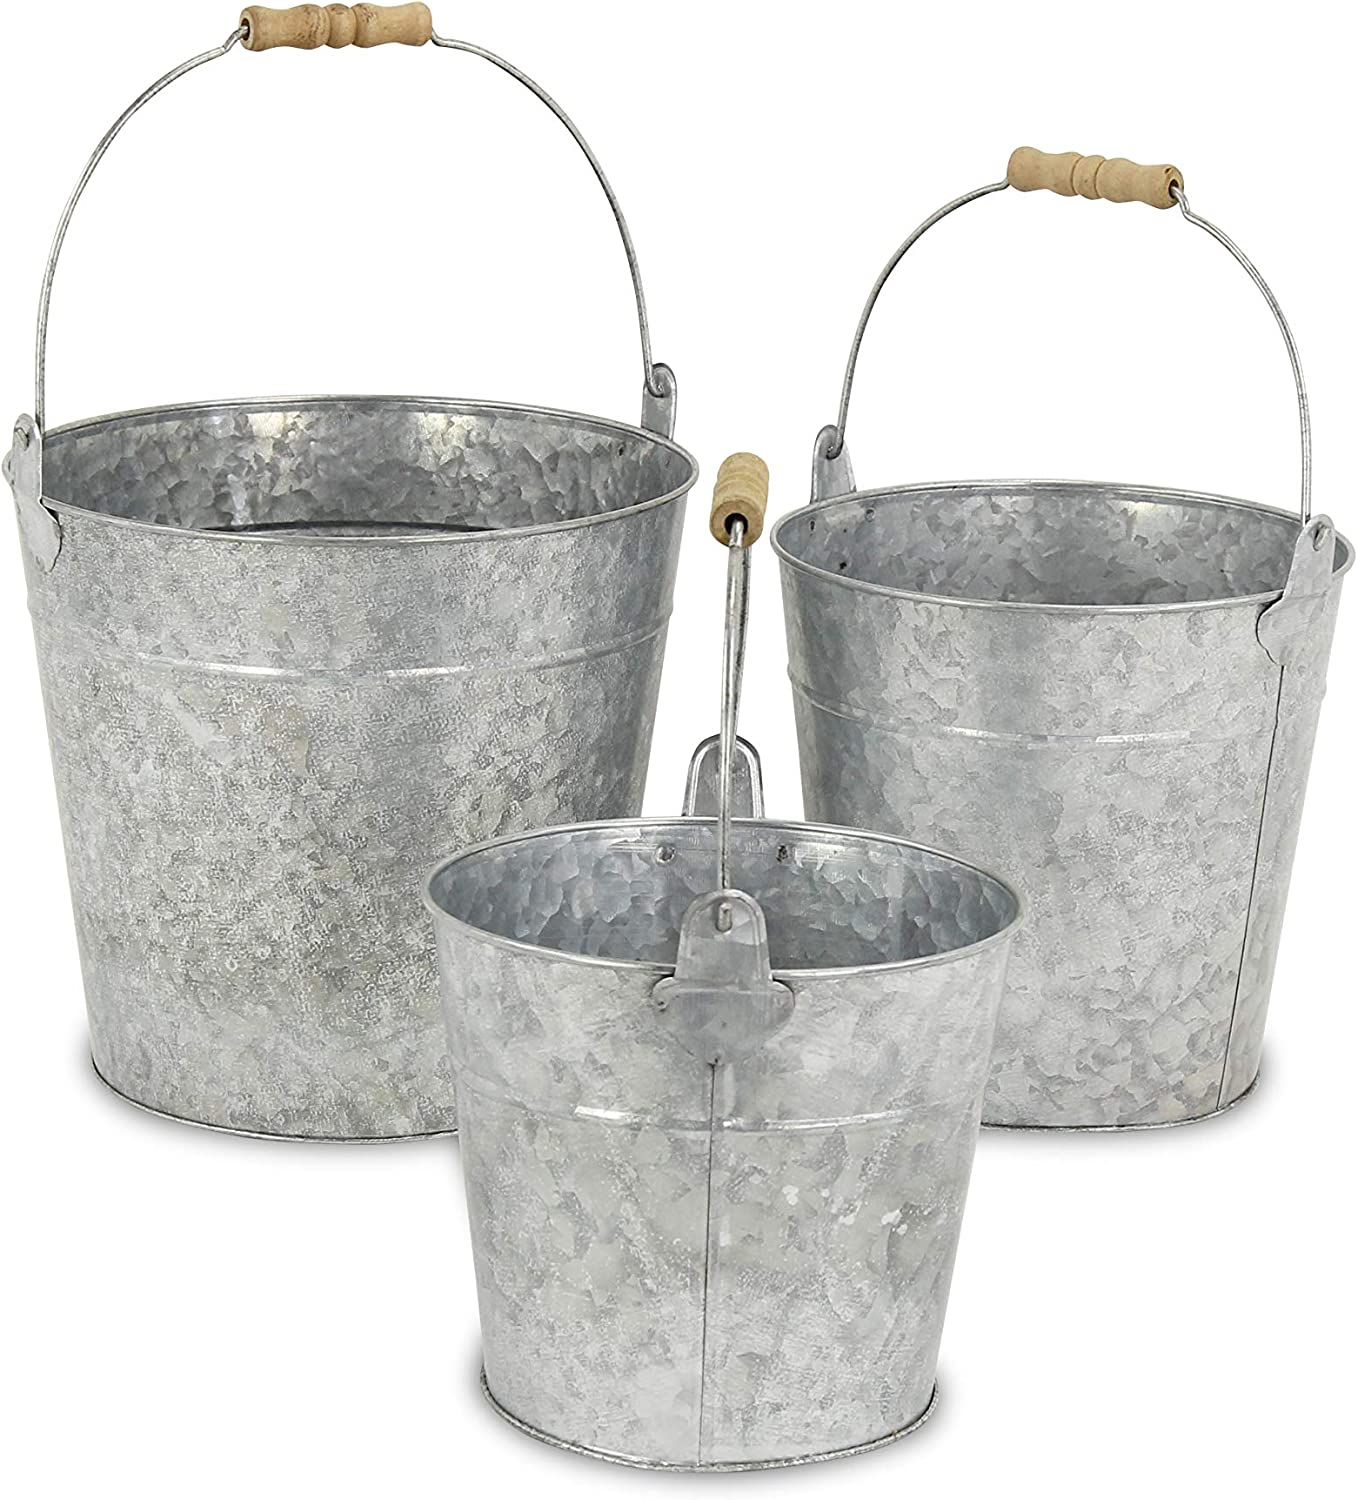 Cheung S Fp 3743 3 Set Of 3 Metal Bucket With Natural Wood Grip Handle Galvanized Gray 3 Piece Home Kitchen